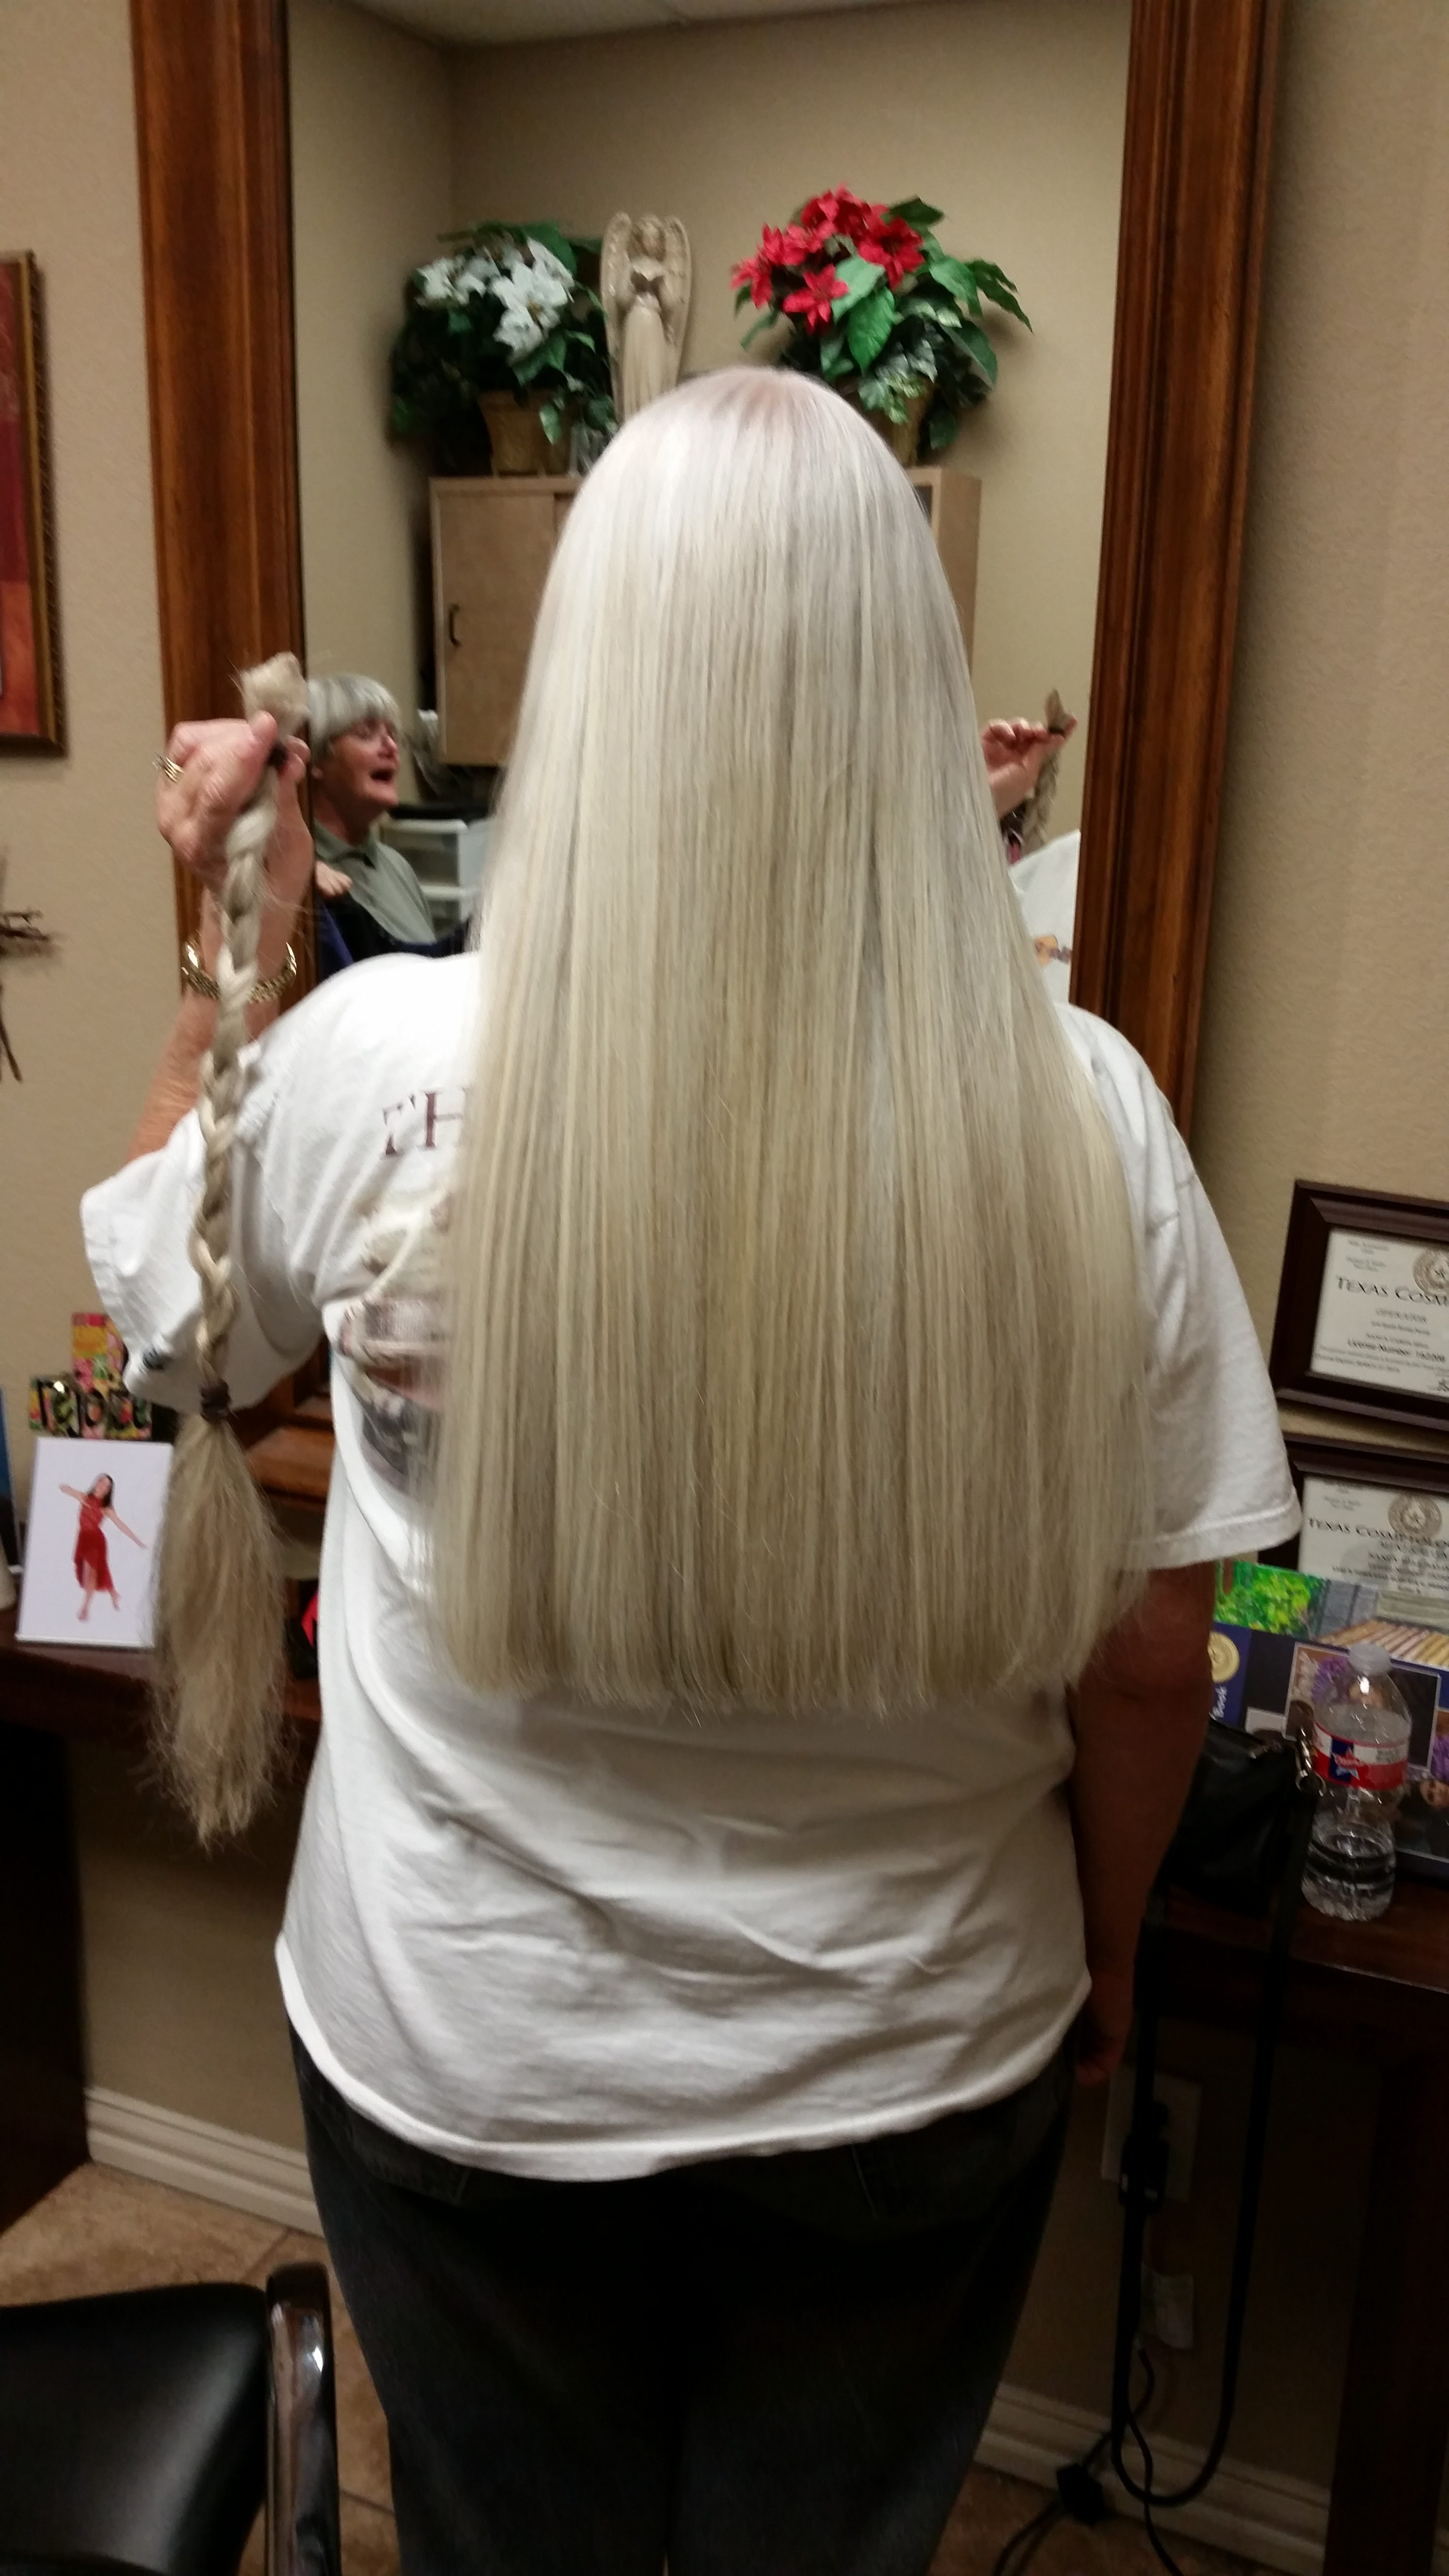 Vicky's hair after the cut for Locks of Love